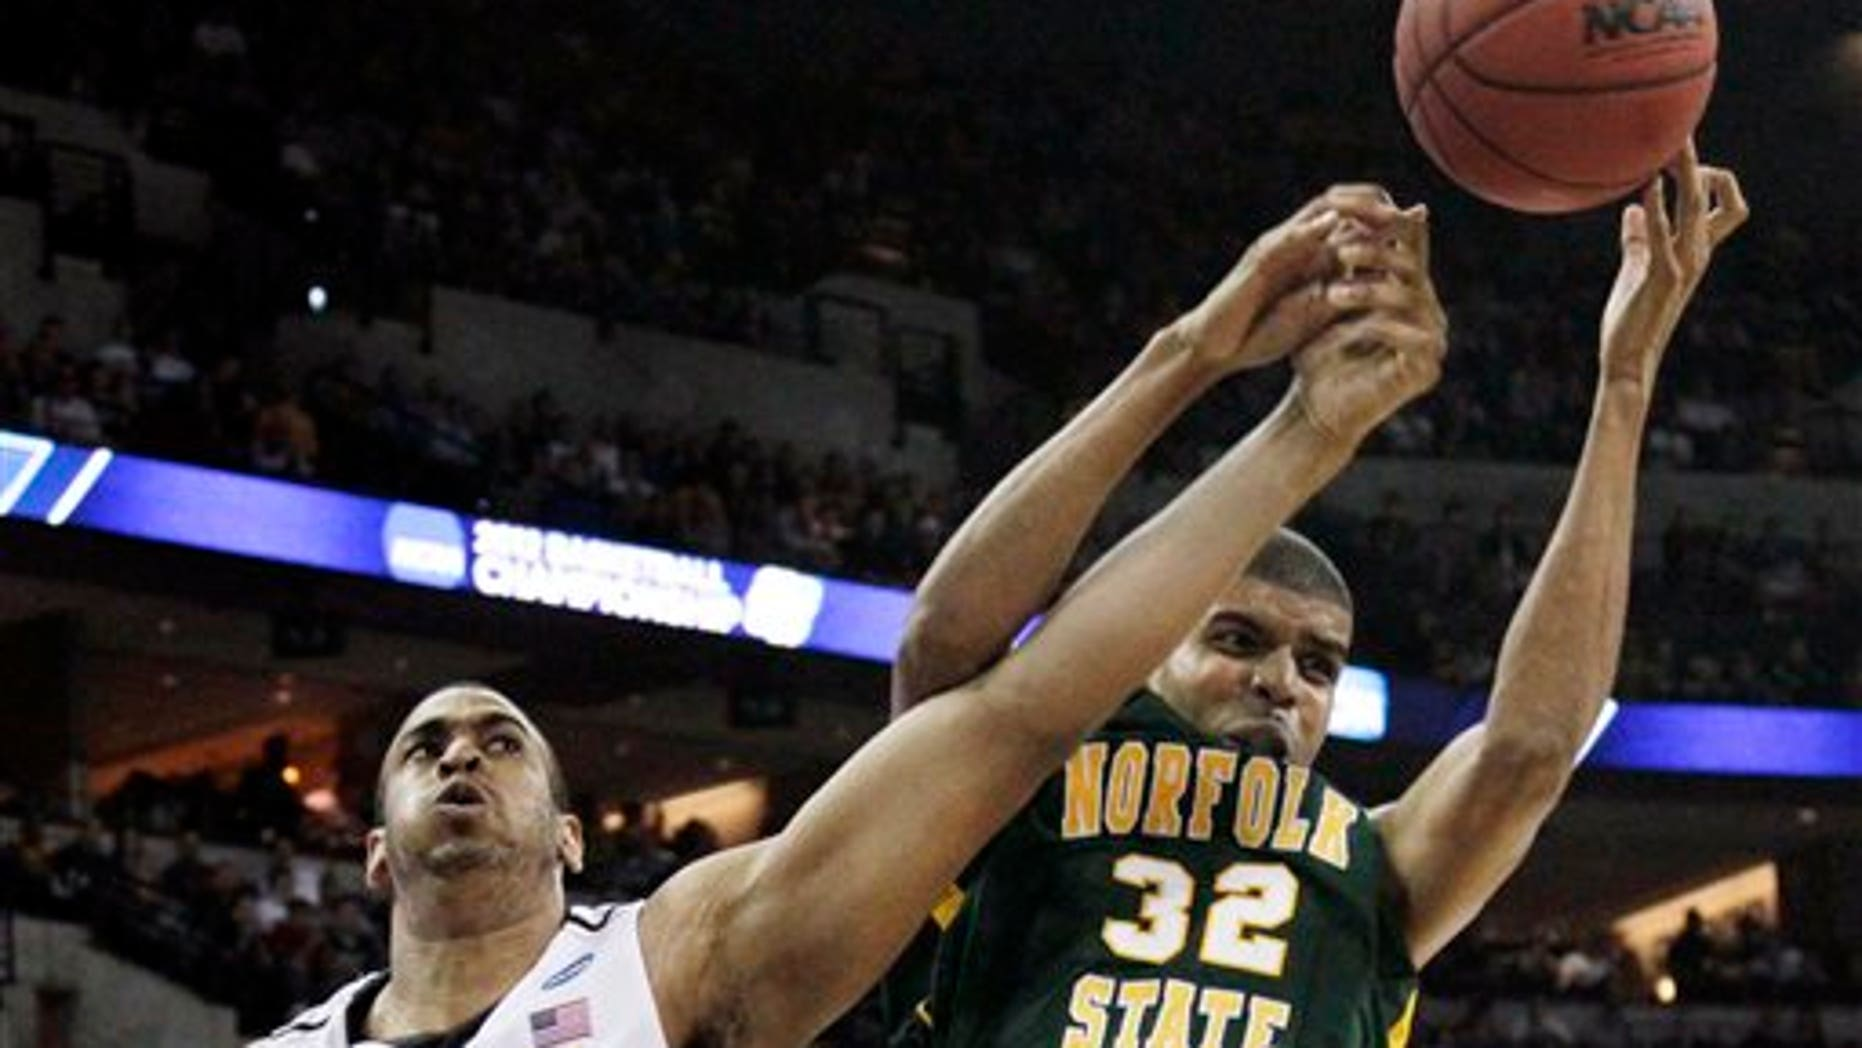 March 16: Missouri center Steve Moore, left, battles for a rebound with Norfolk State forward Marcos Tamares, right, during the first half of an NCAA college basketball tournament game at CenturyLink Center in Omaha, Neb.